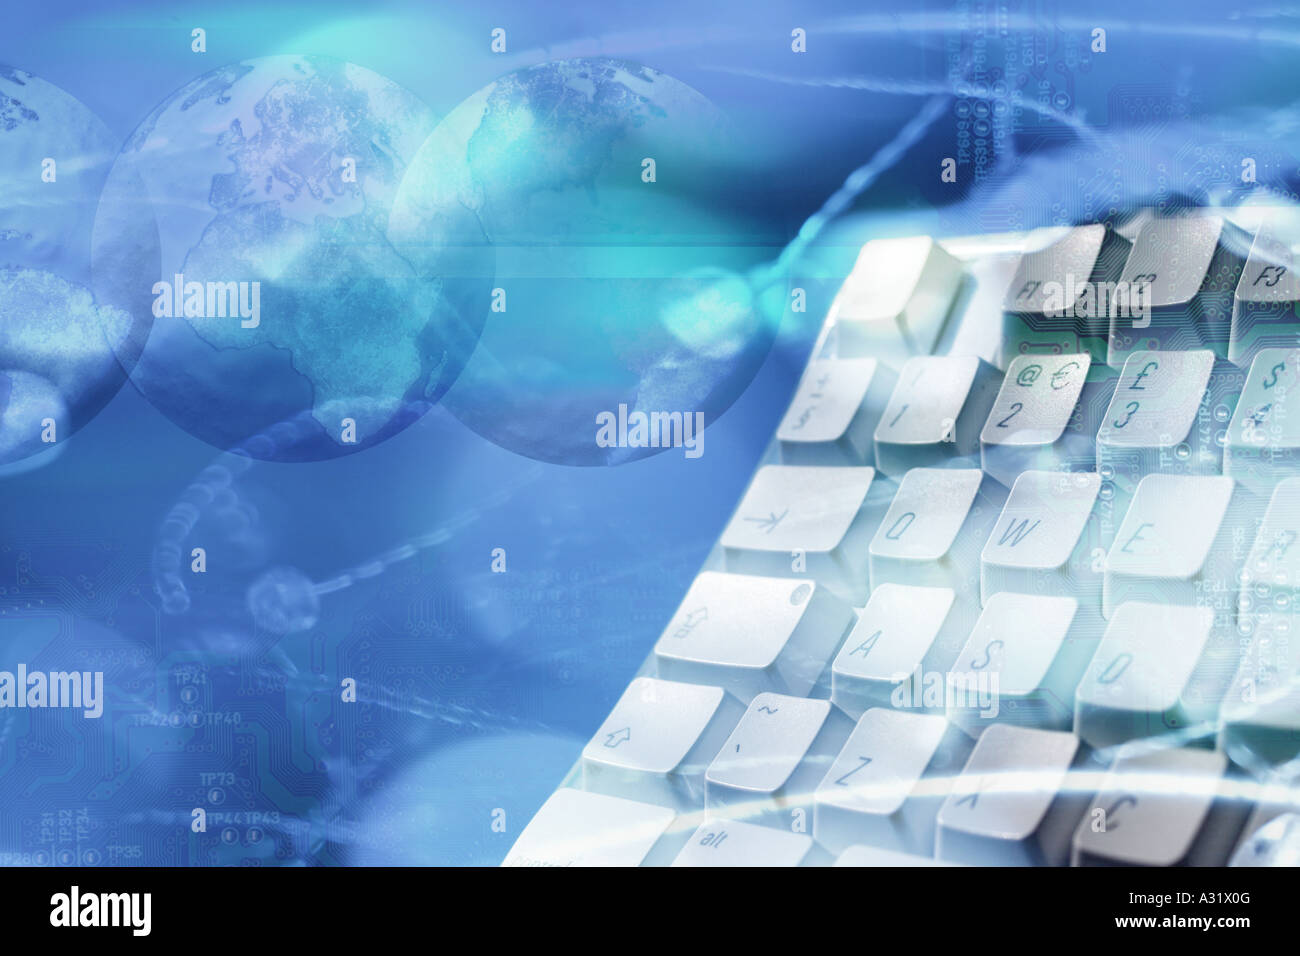 montage of computer keyboard and globes - Stock Image